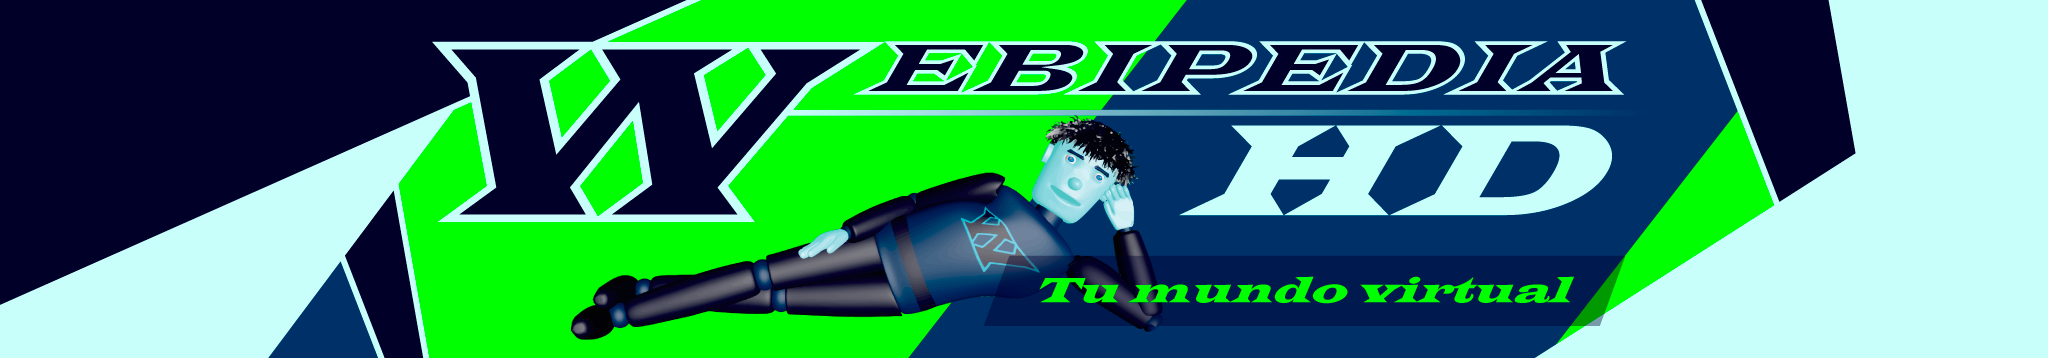 Banner de Webipedia HD